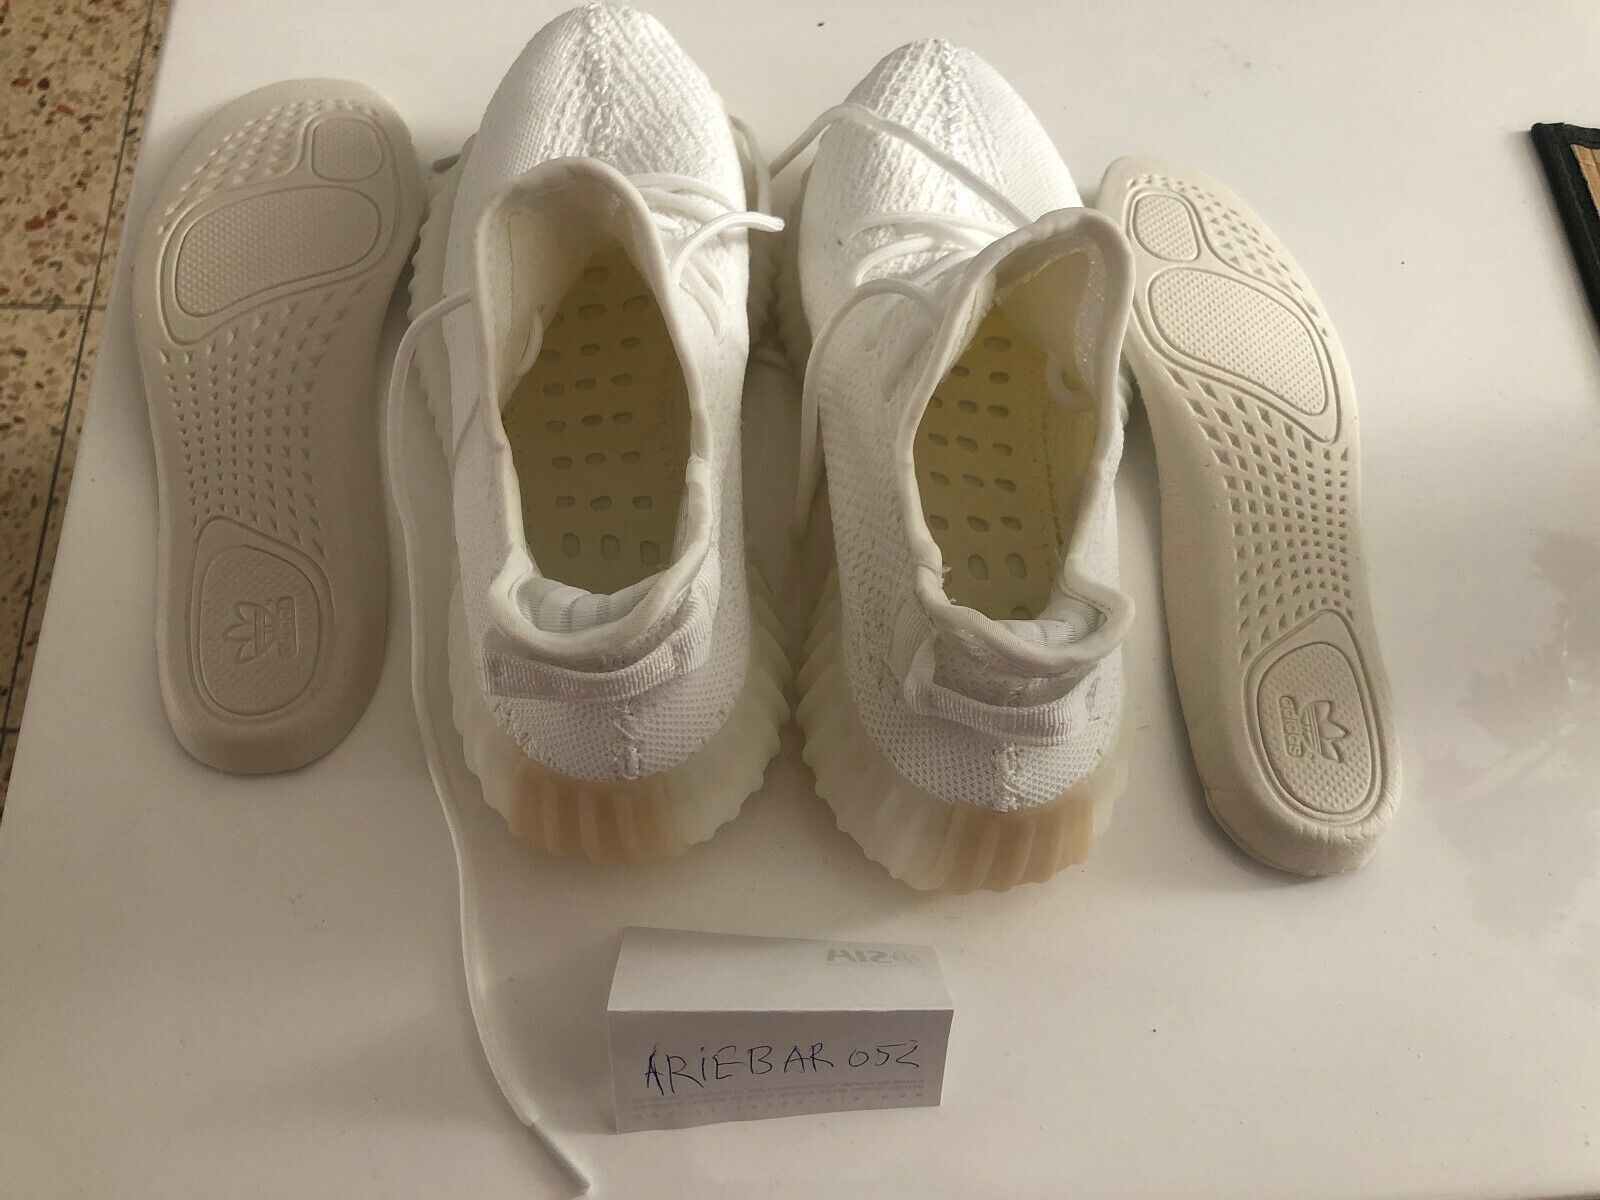 Adidas Yeezy Boost 350 blanc Collor taille 41 (1 3)